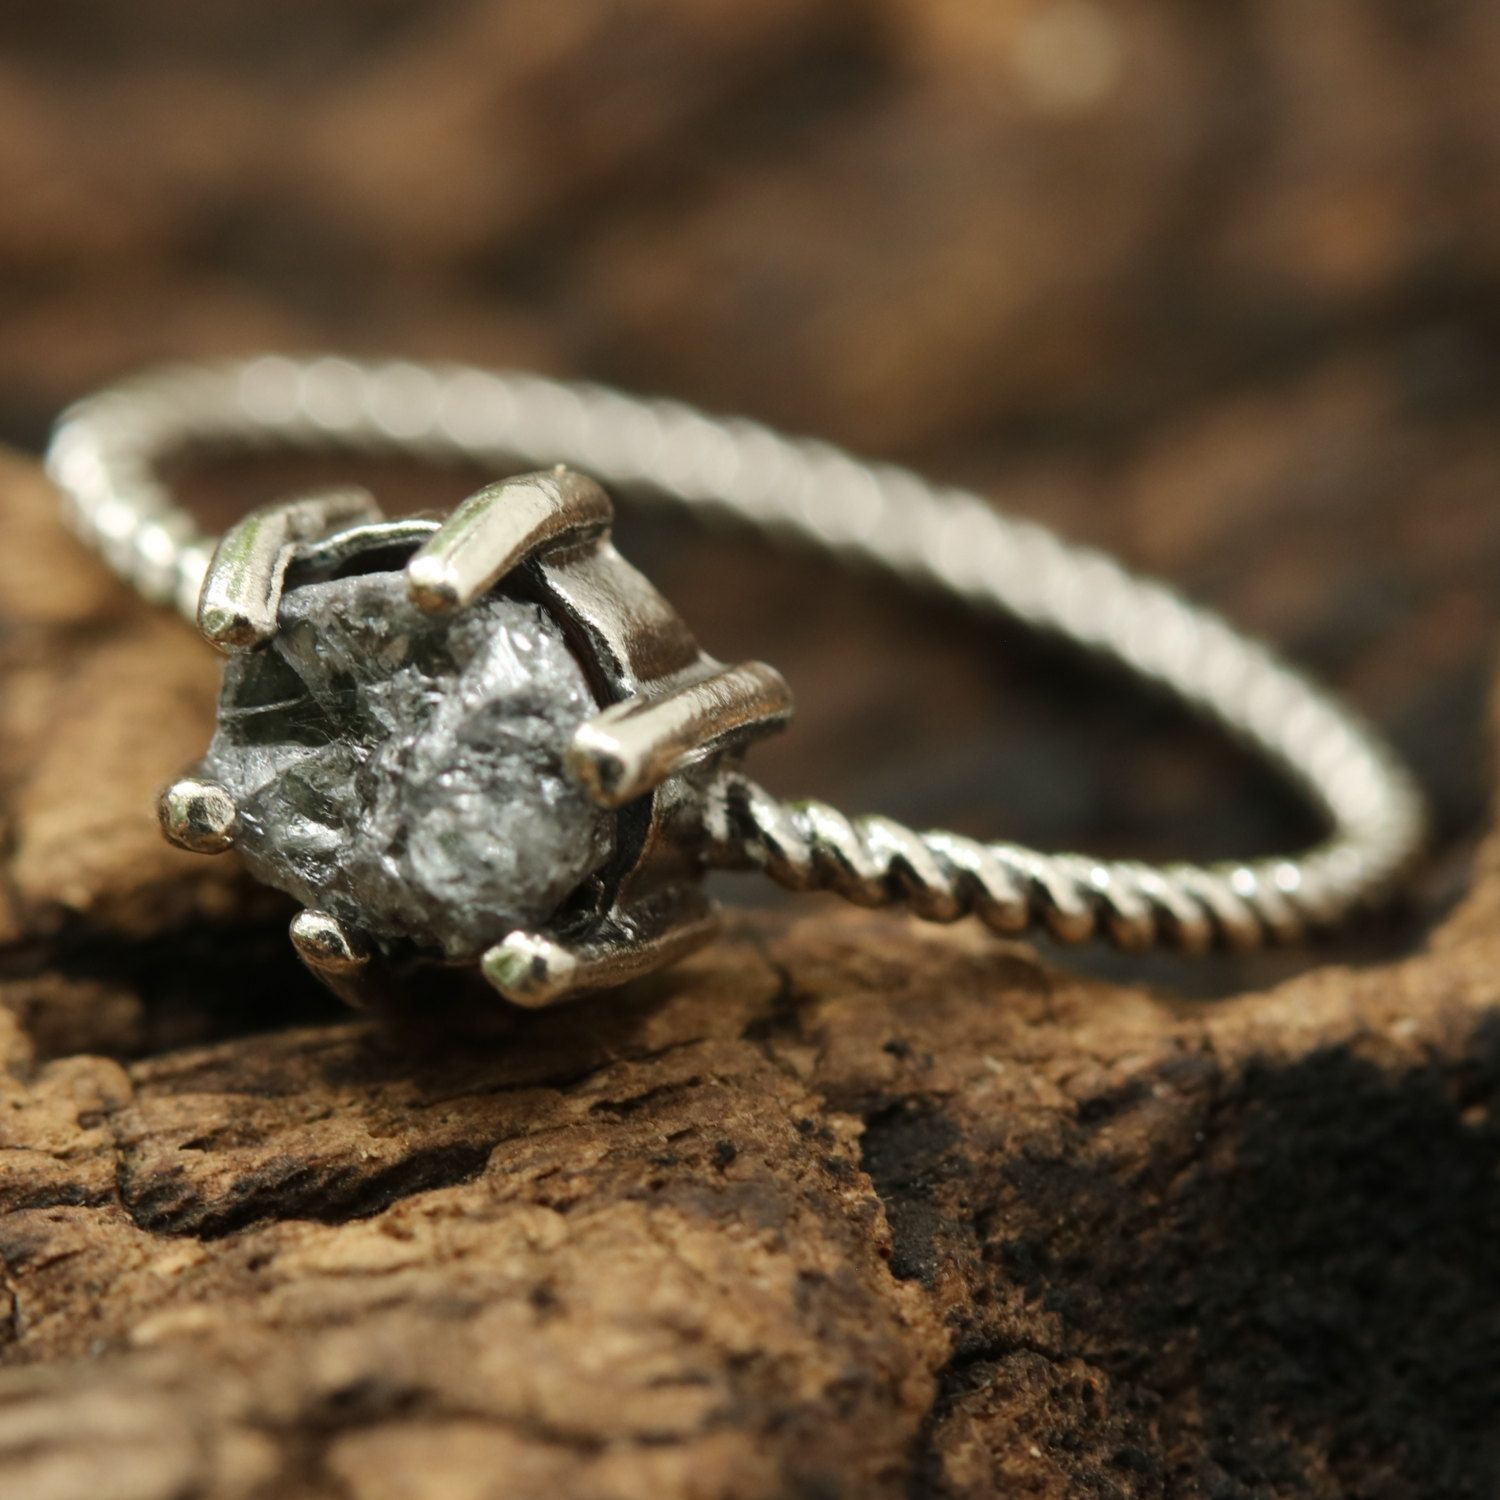 Engagement ring rough diamond in silver prongs setting with oxidized sterling silver twist design band